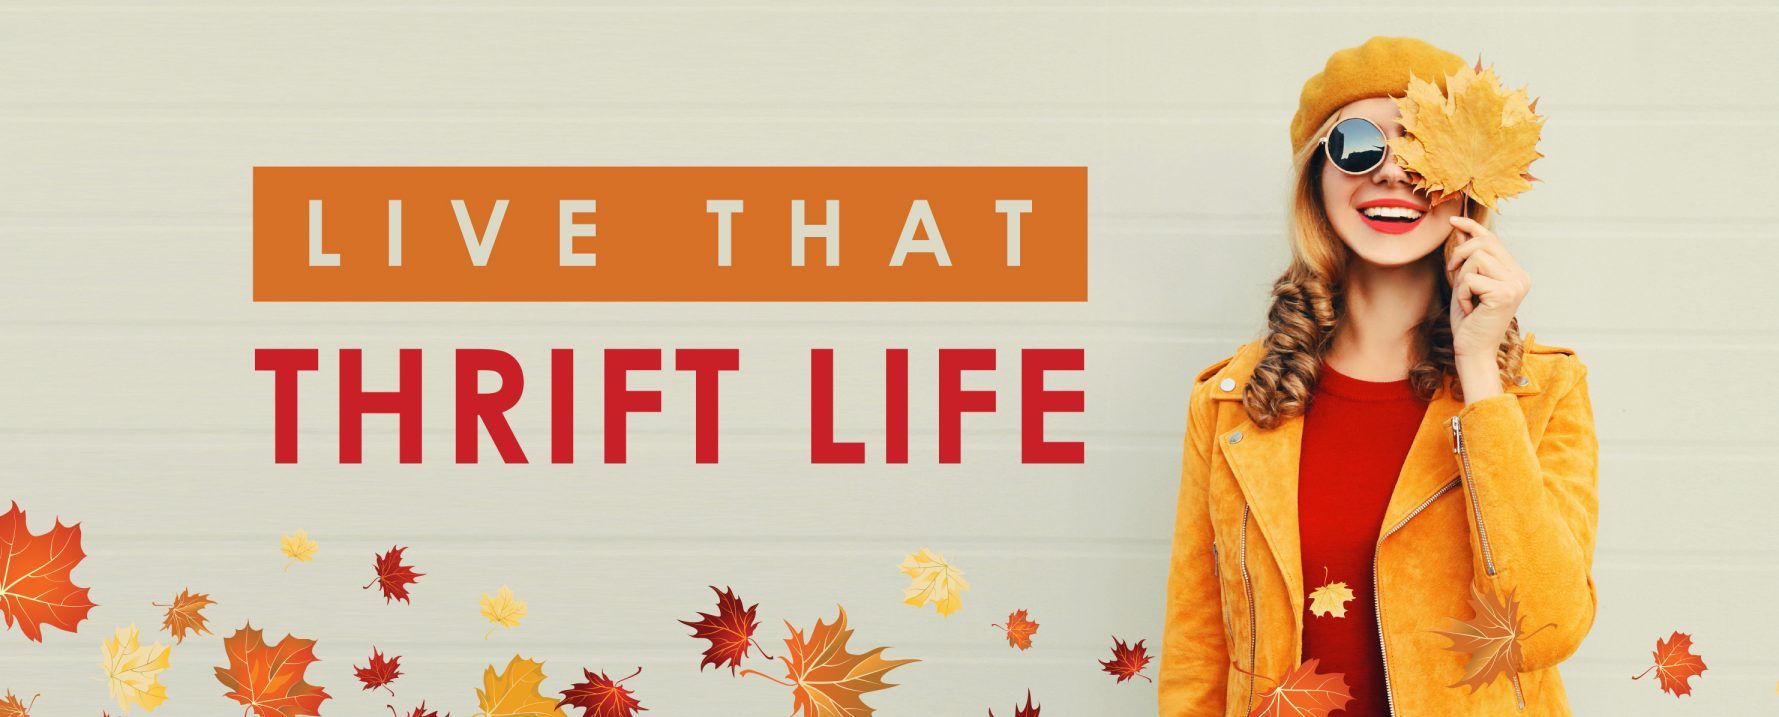 Live that Thrift Life